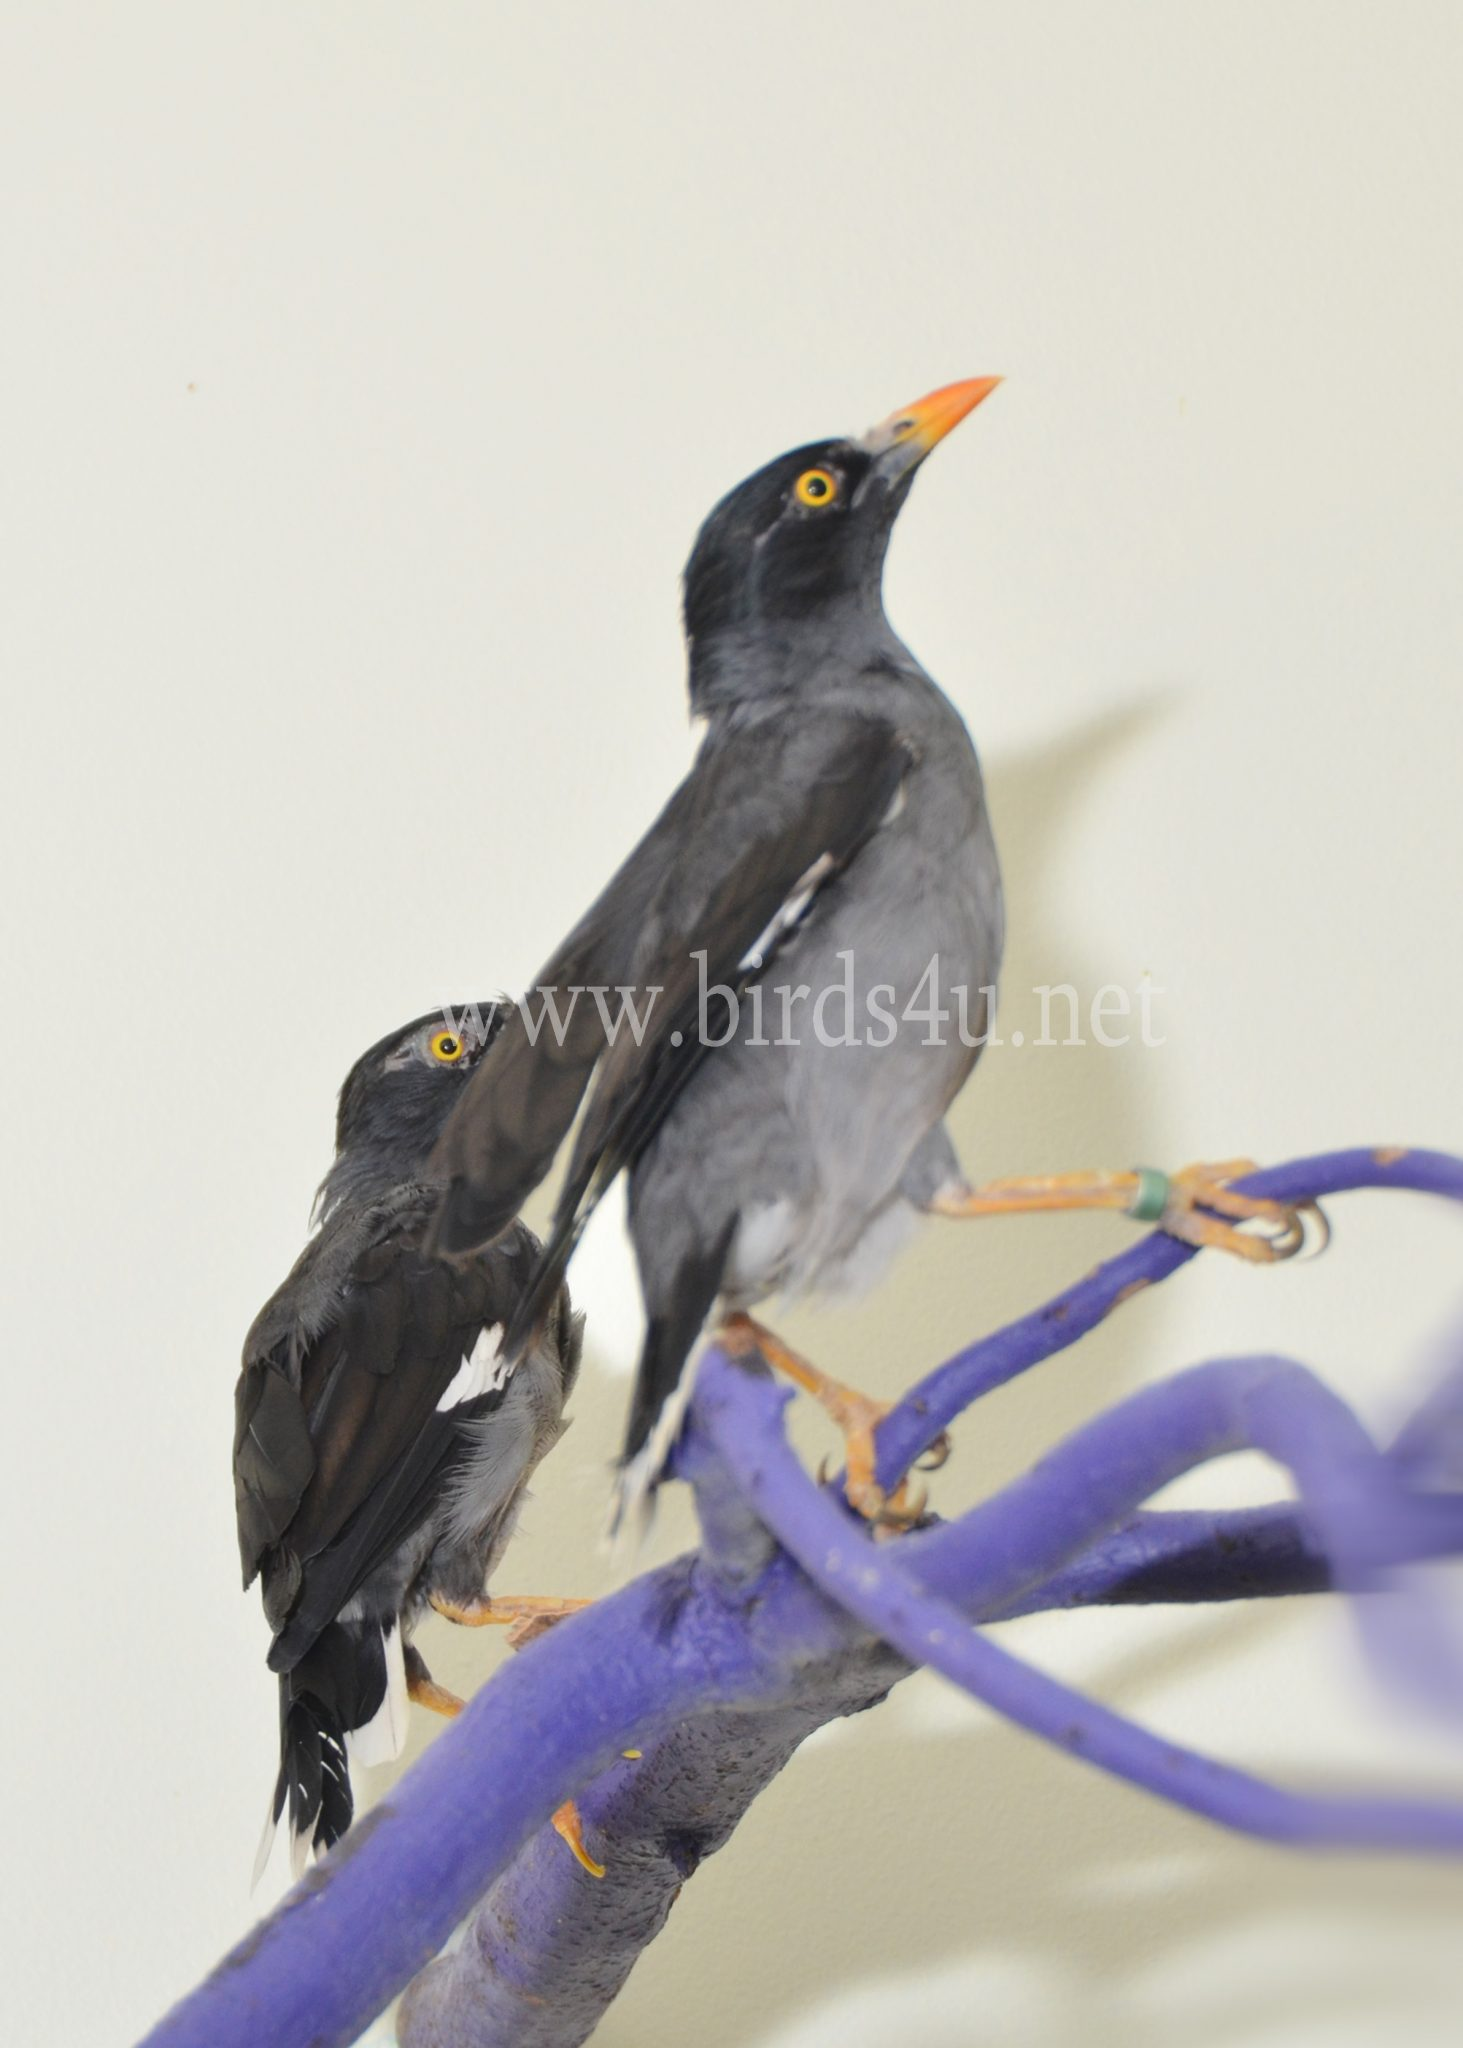 Mynah Bird - photo#45